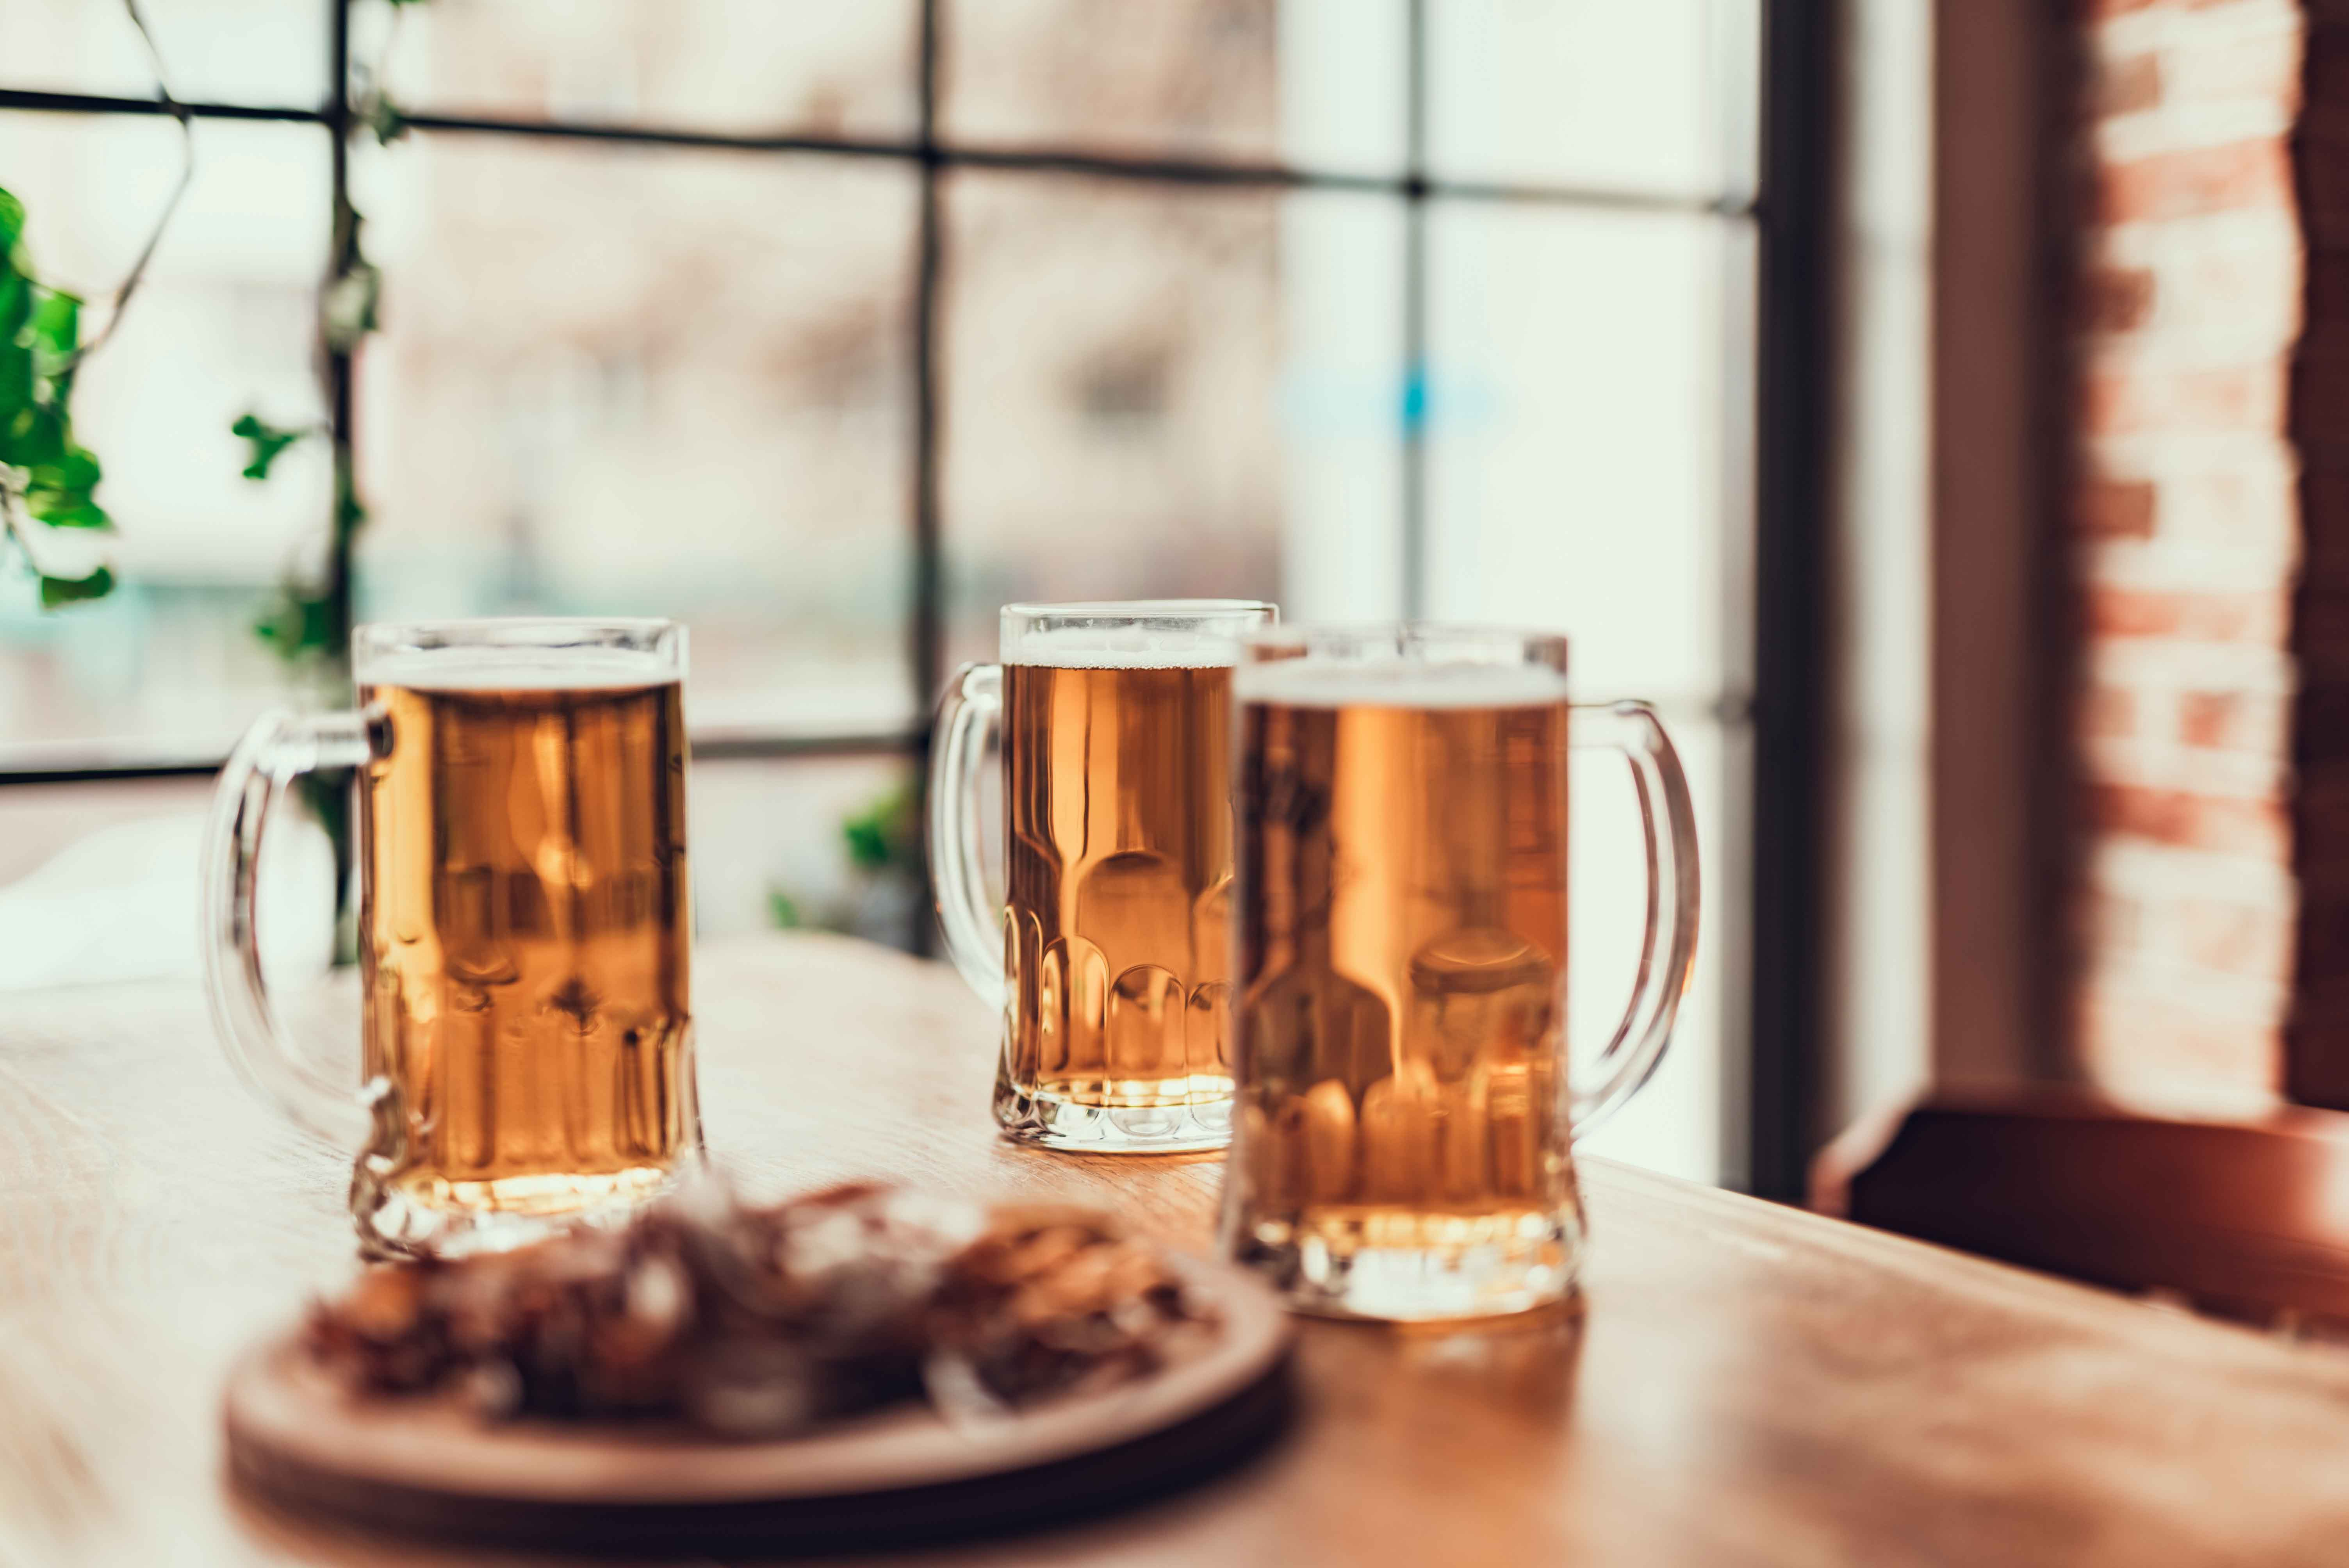 BUSTED: 13 Common Drinking Myths and the Lies Behind Them